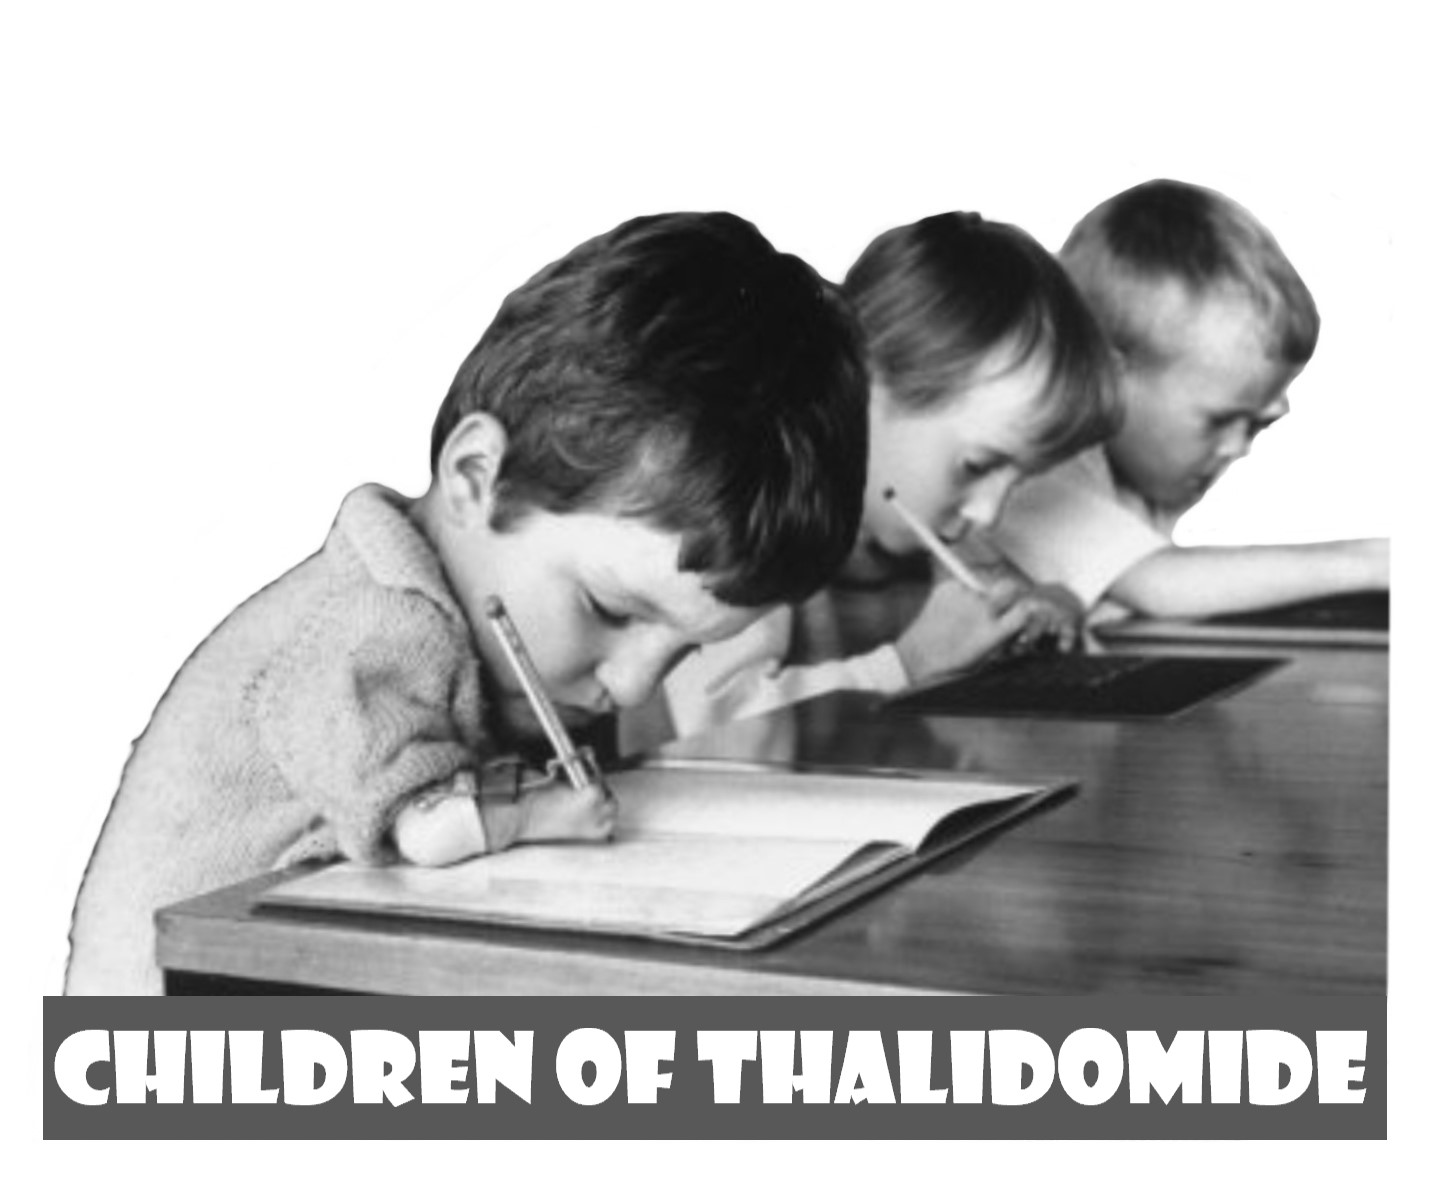 Part Three of Three - The Children of Thalidomide Chronicles